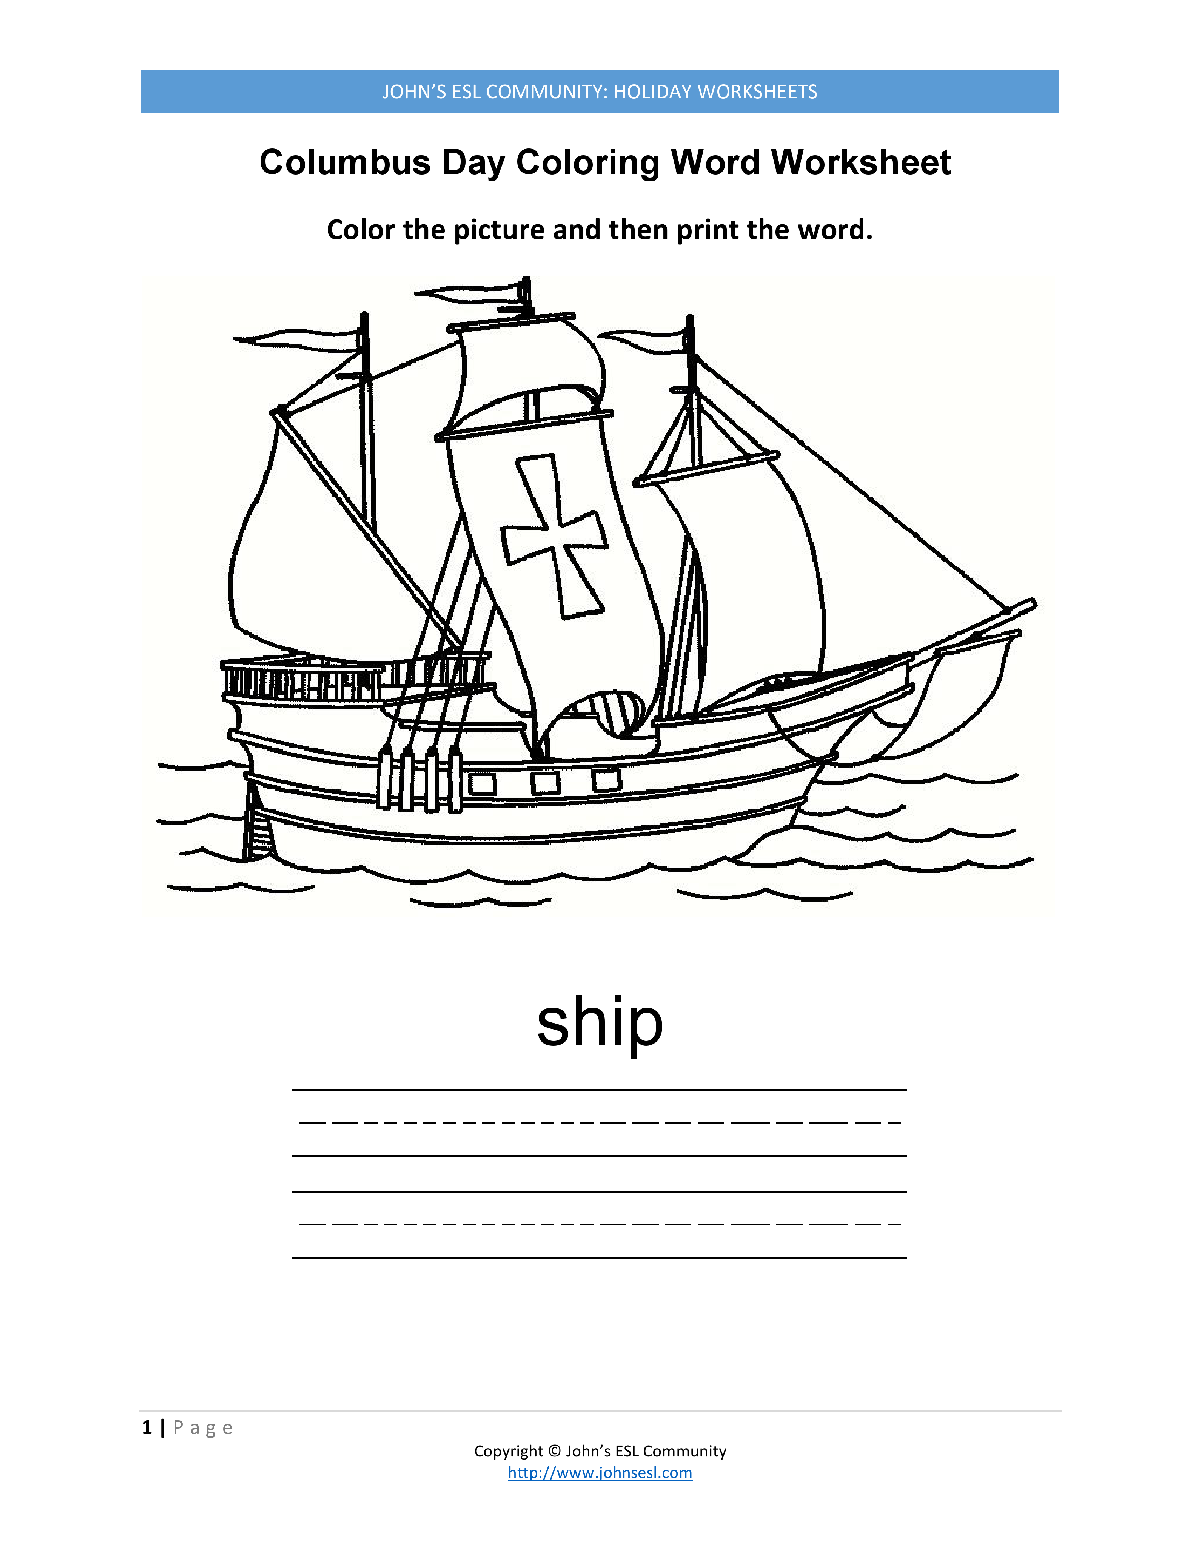 Worksheets Columbus Day Worksheets johns esl communityholidayscolumbus day